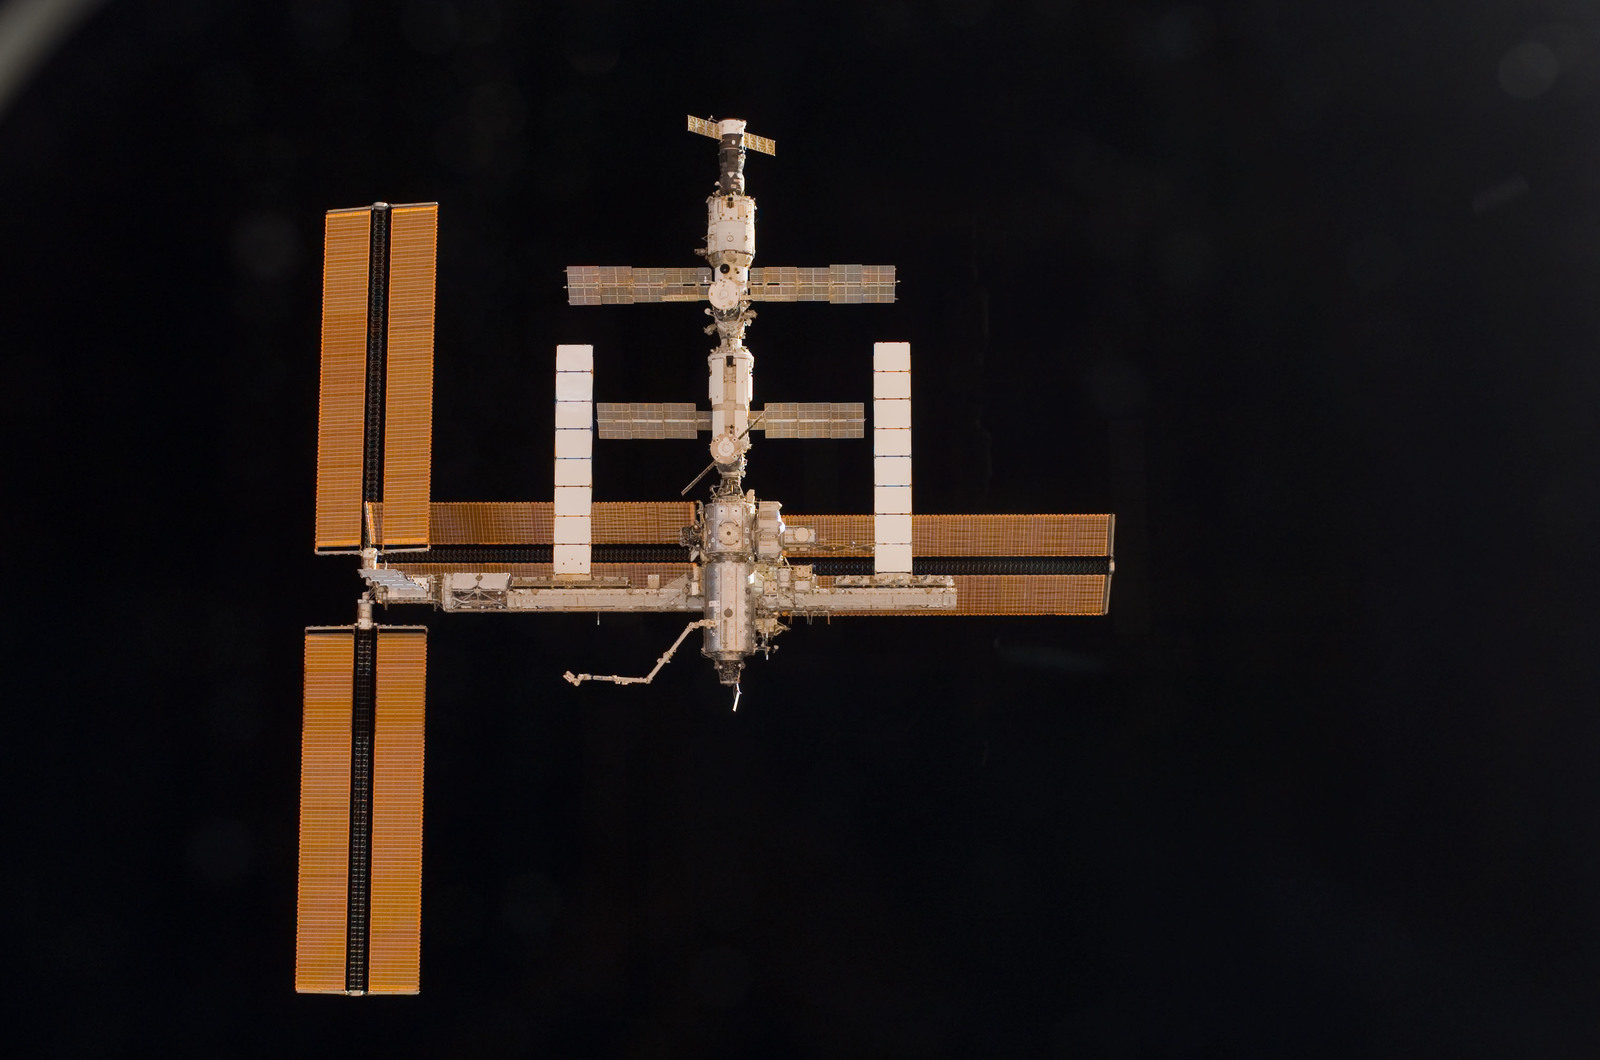 S115E06728 - STS-115 - Overall exterior view of the ISS during undocking and Flyaround Operations for STS-115 Space Shuttle Atlantis